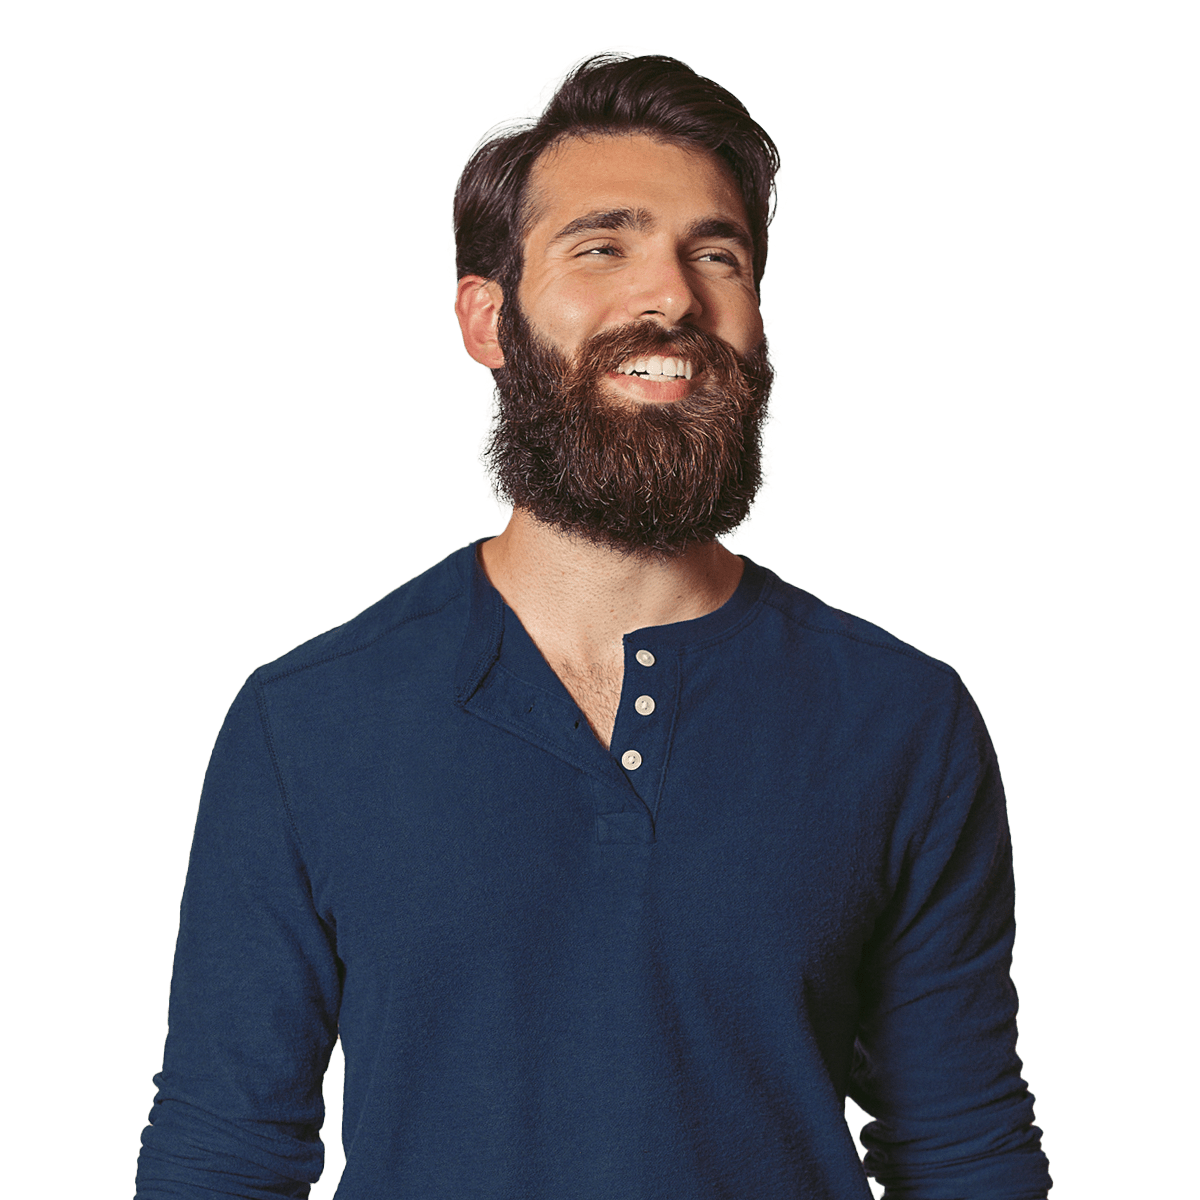 Man in dark blue shirt smiling while looking off to the side.